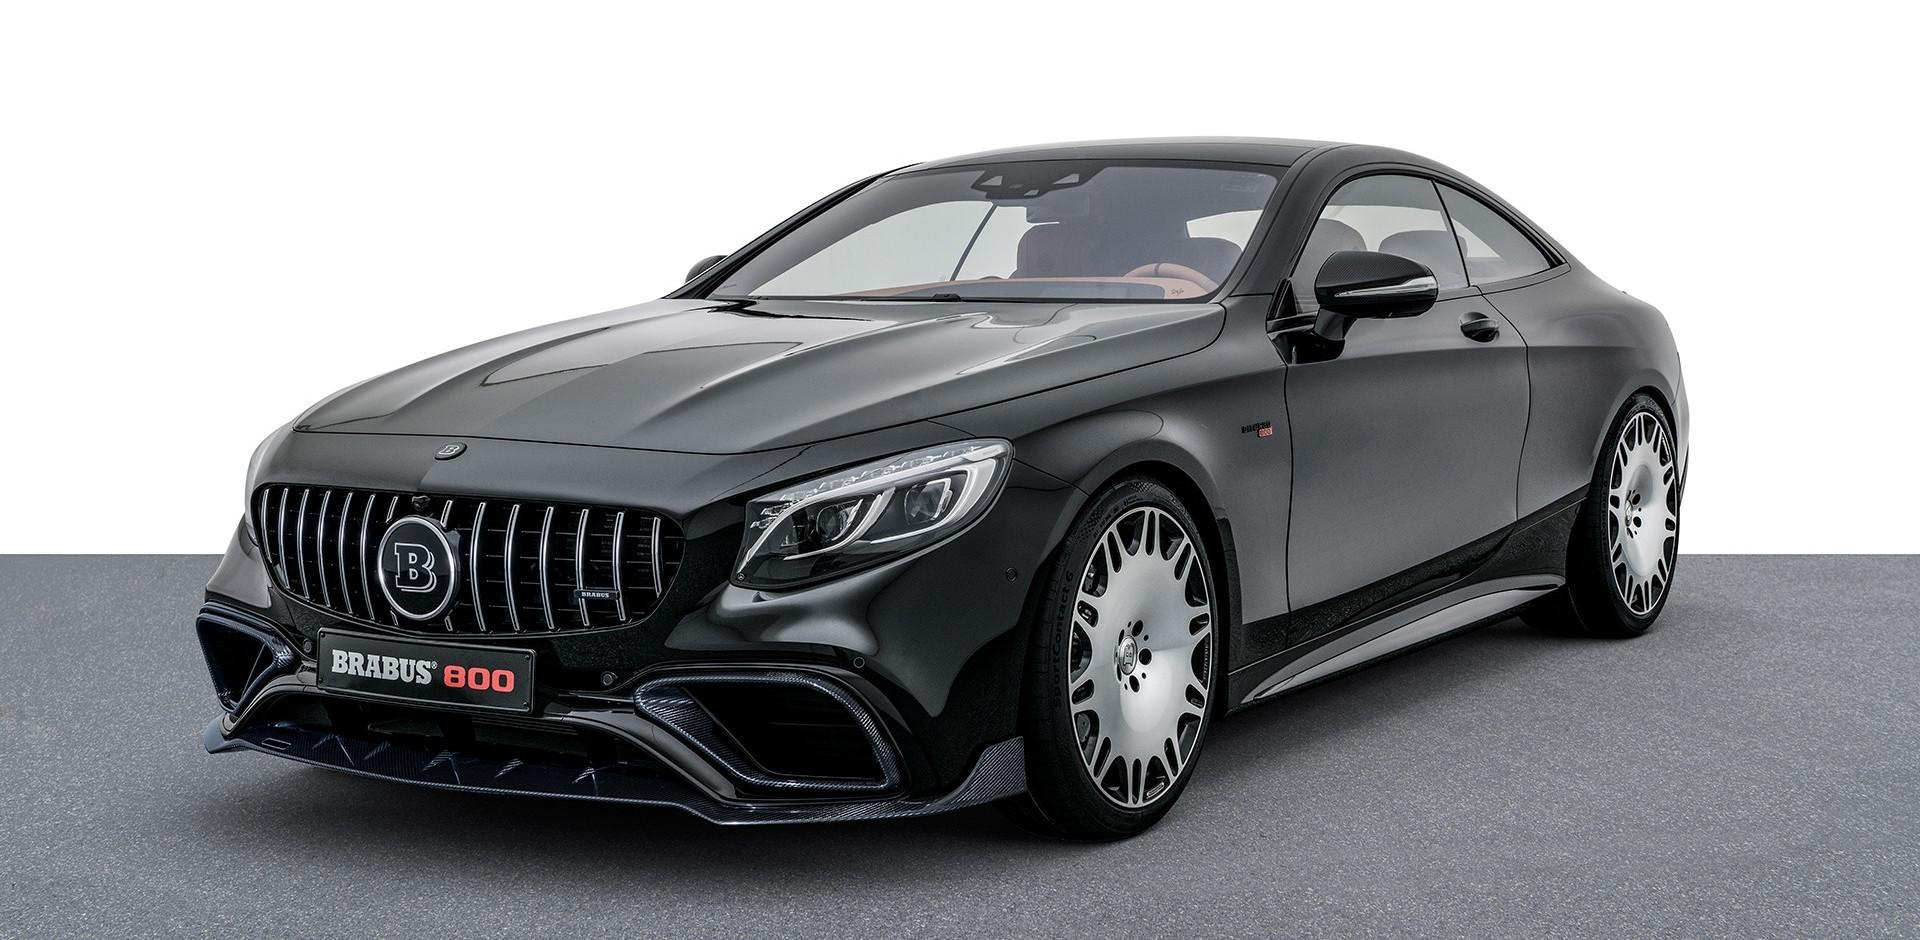 brabus-800-performance-mercedes-benz-s63-4matic-coupe-803-1.jpg